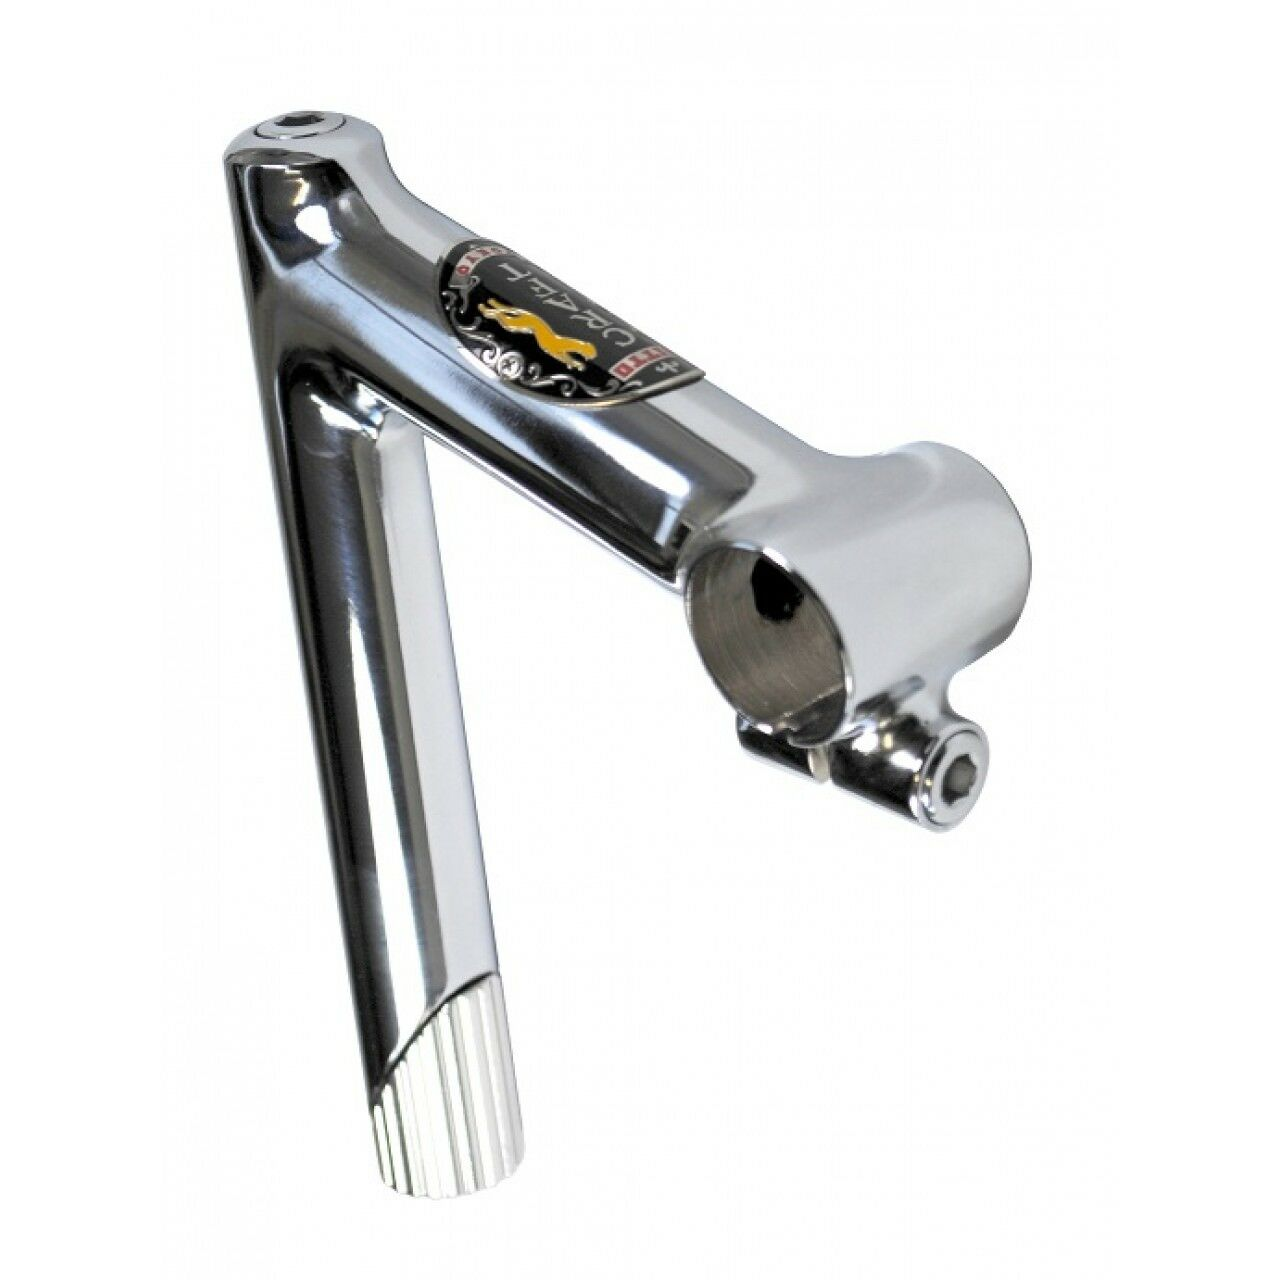 Nitto Craft Steel Quill Stem Polished Chrome 25.4 & 26.0 Multiple Stem Sizes